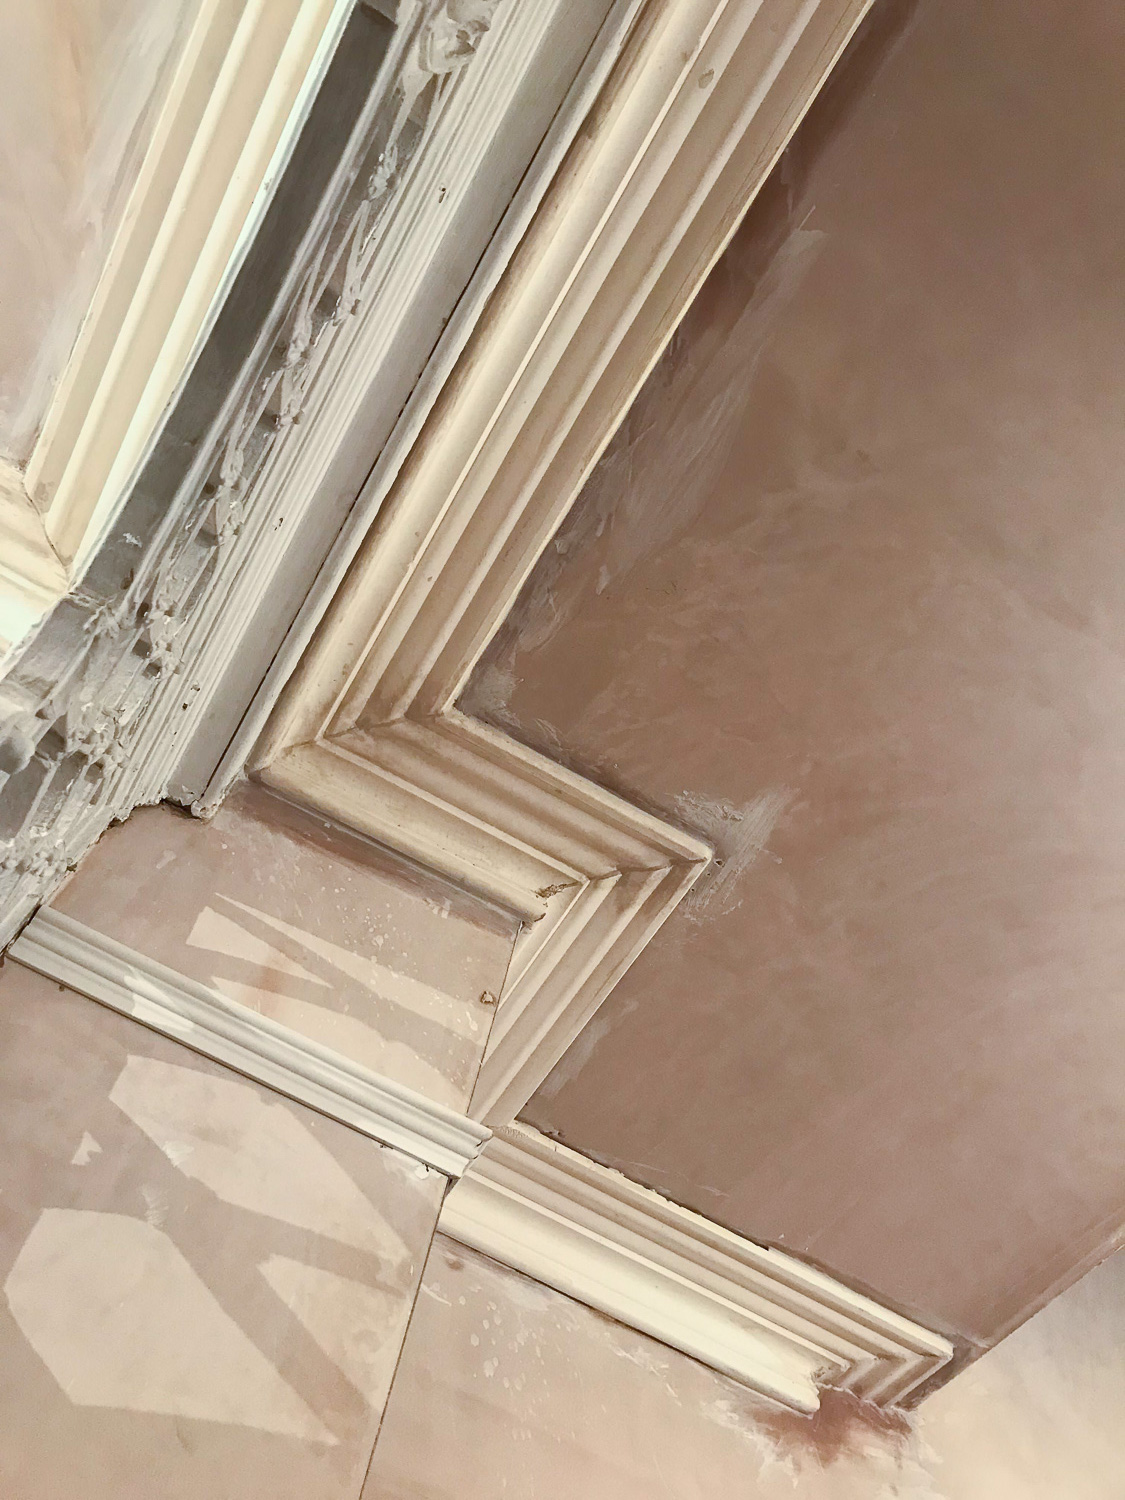 Detailed close up of the coving just after it had been fitted and before it had been painted.